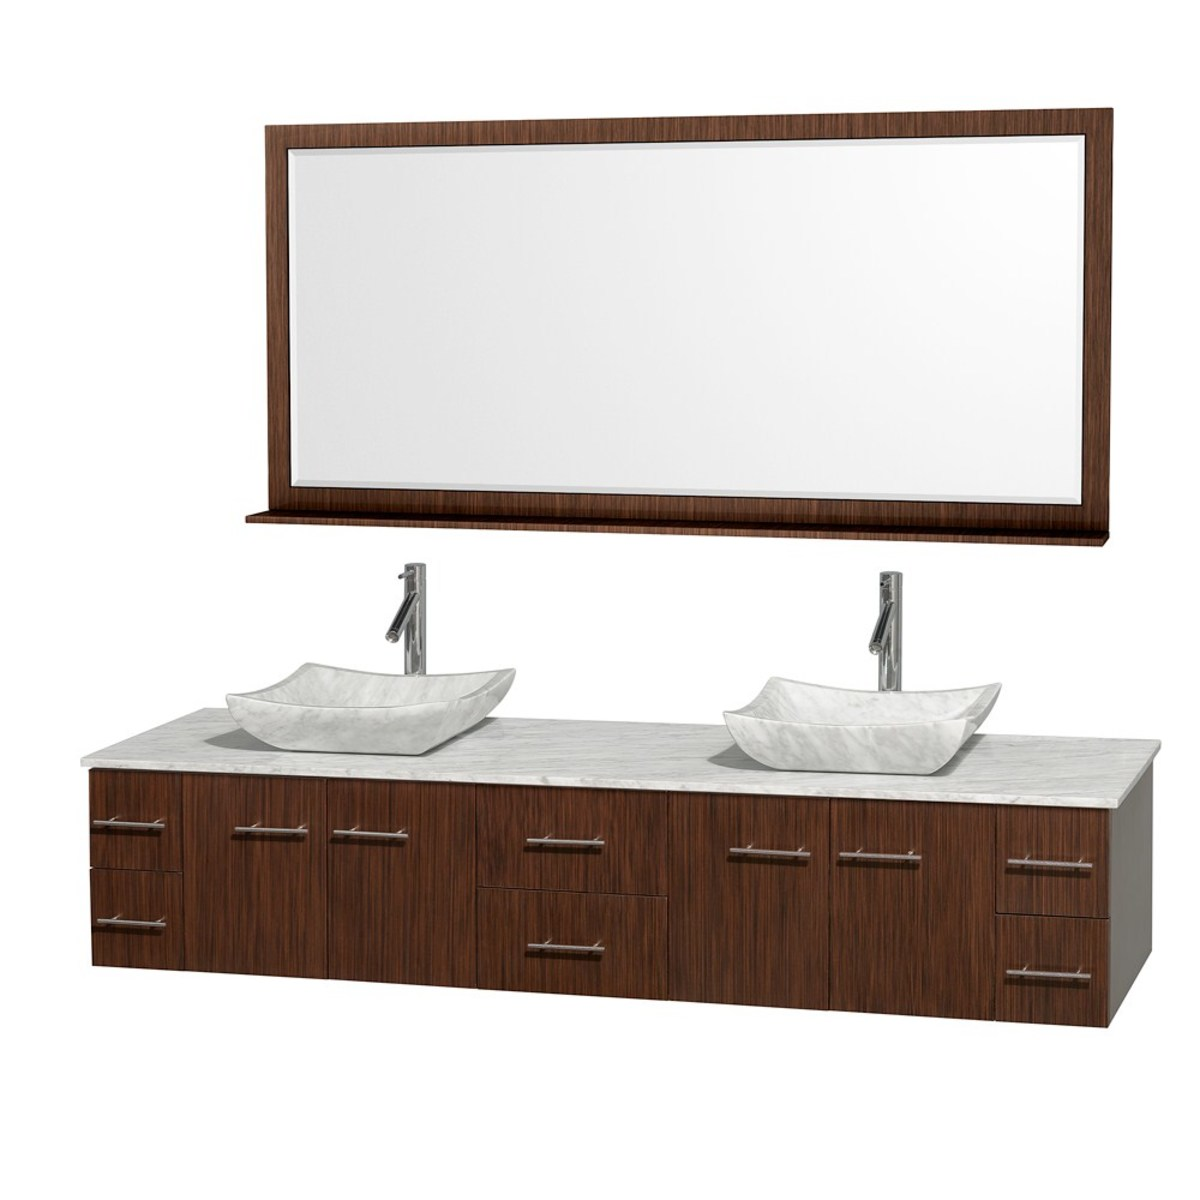 A great modern update to your Mid century bathroom. Find the Bianca floating vanity on ModernBathroom.com